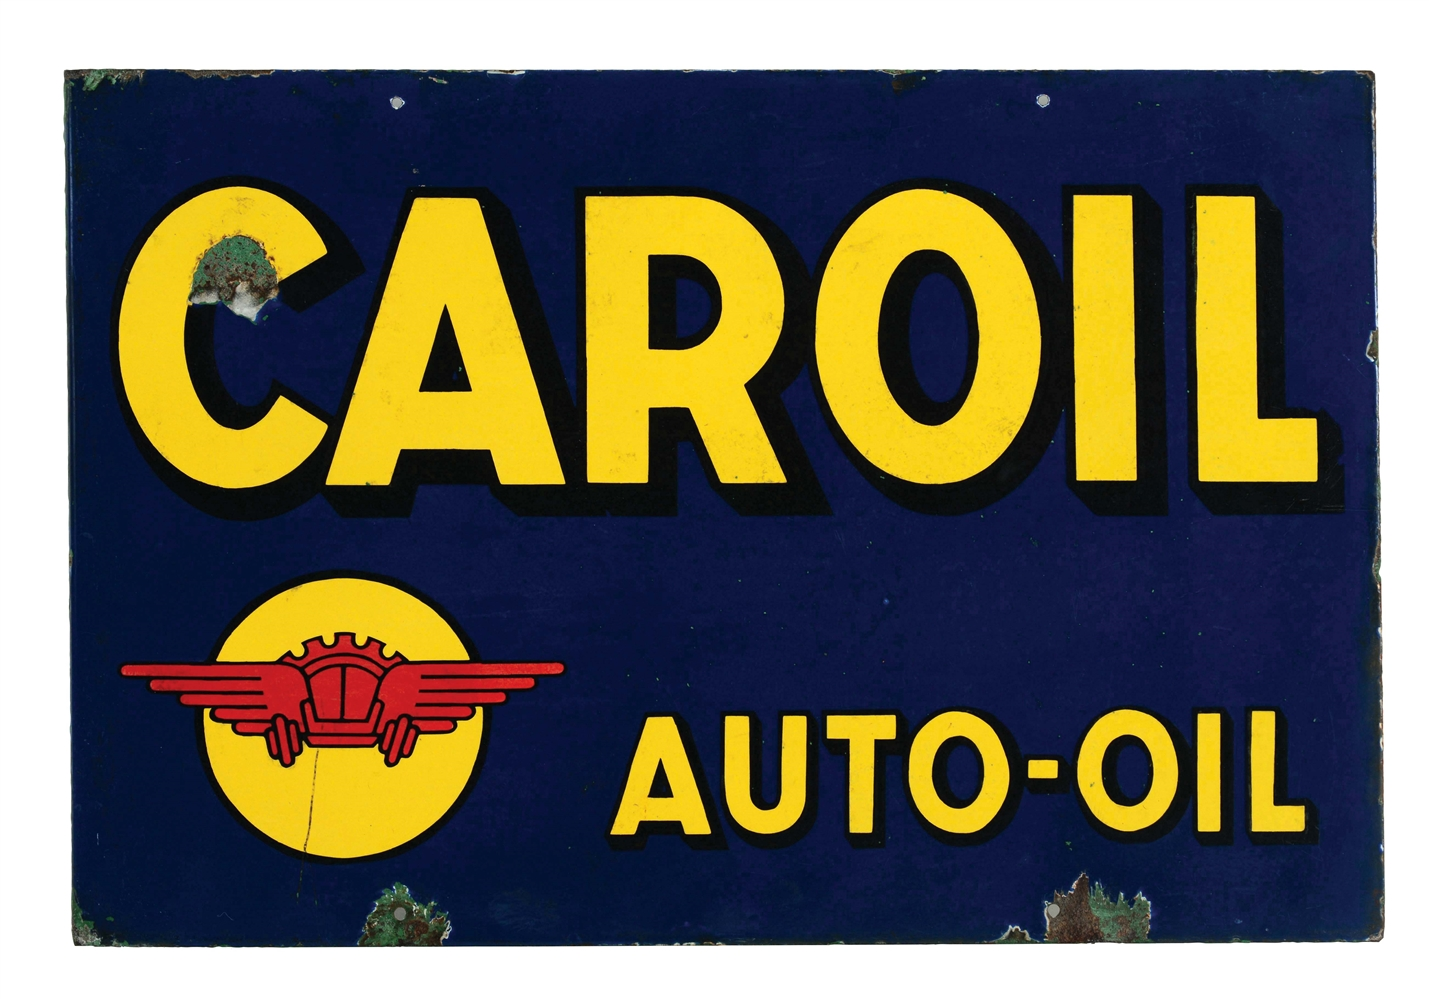 Caroil Auto-Oil Porcelain Flange Sign.